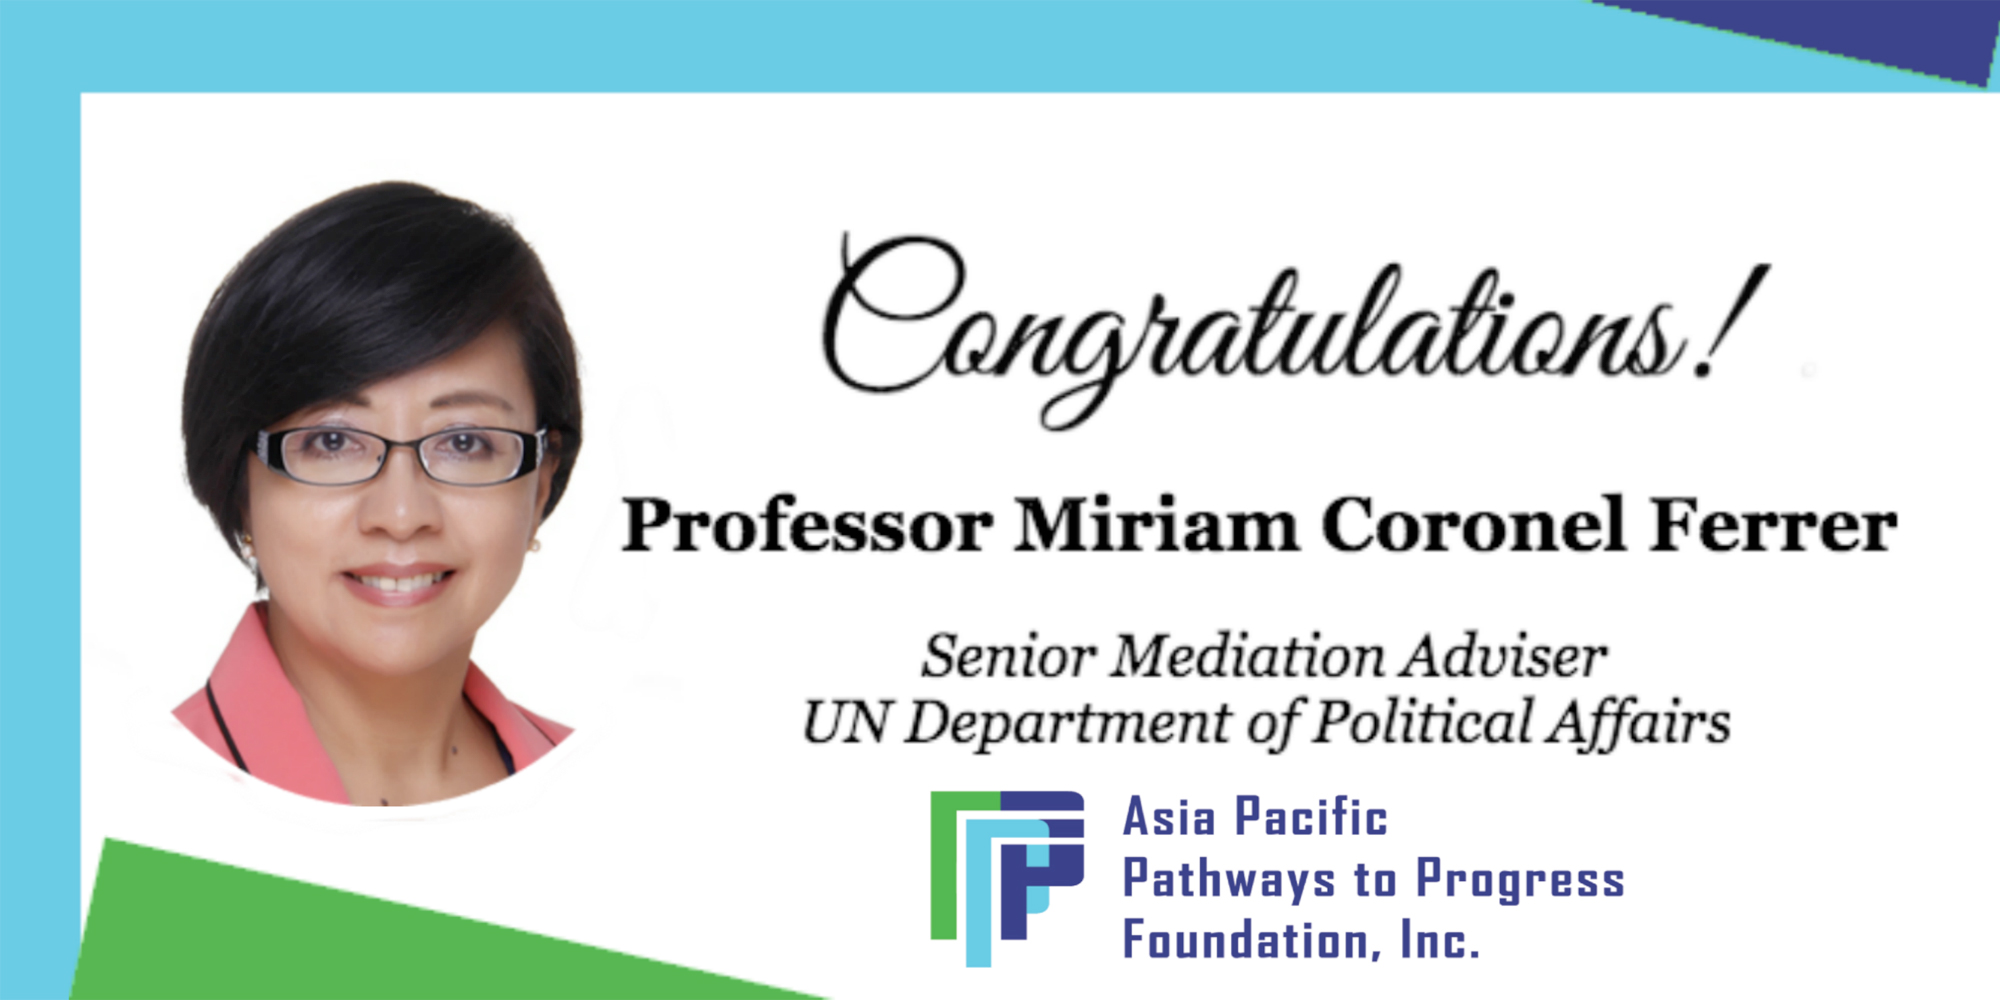 APPFI Trustee appointed as Senior Mediation Adviser at UN